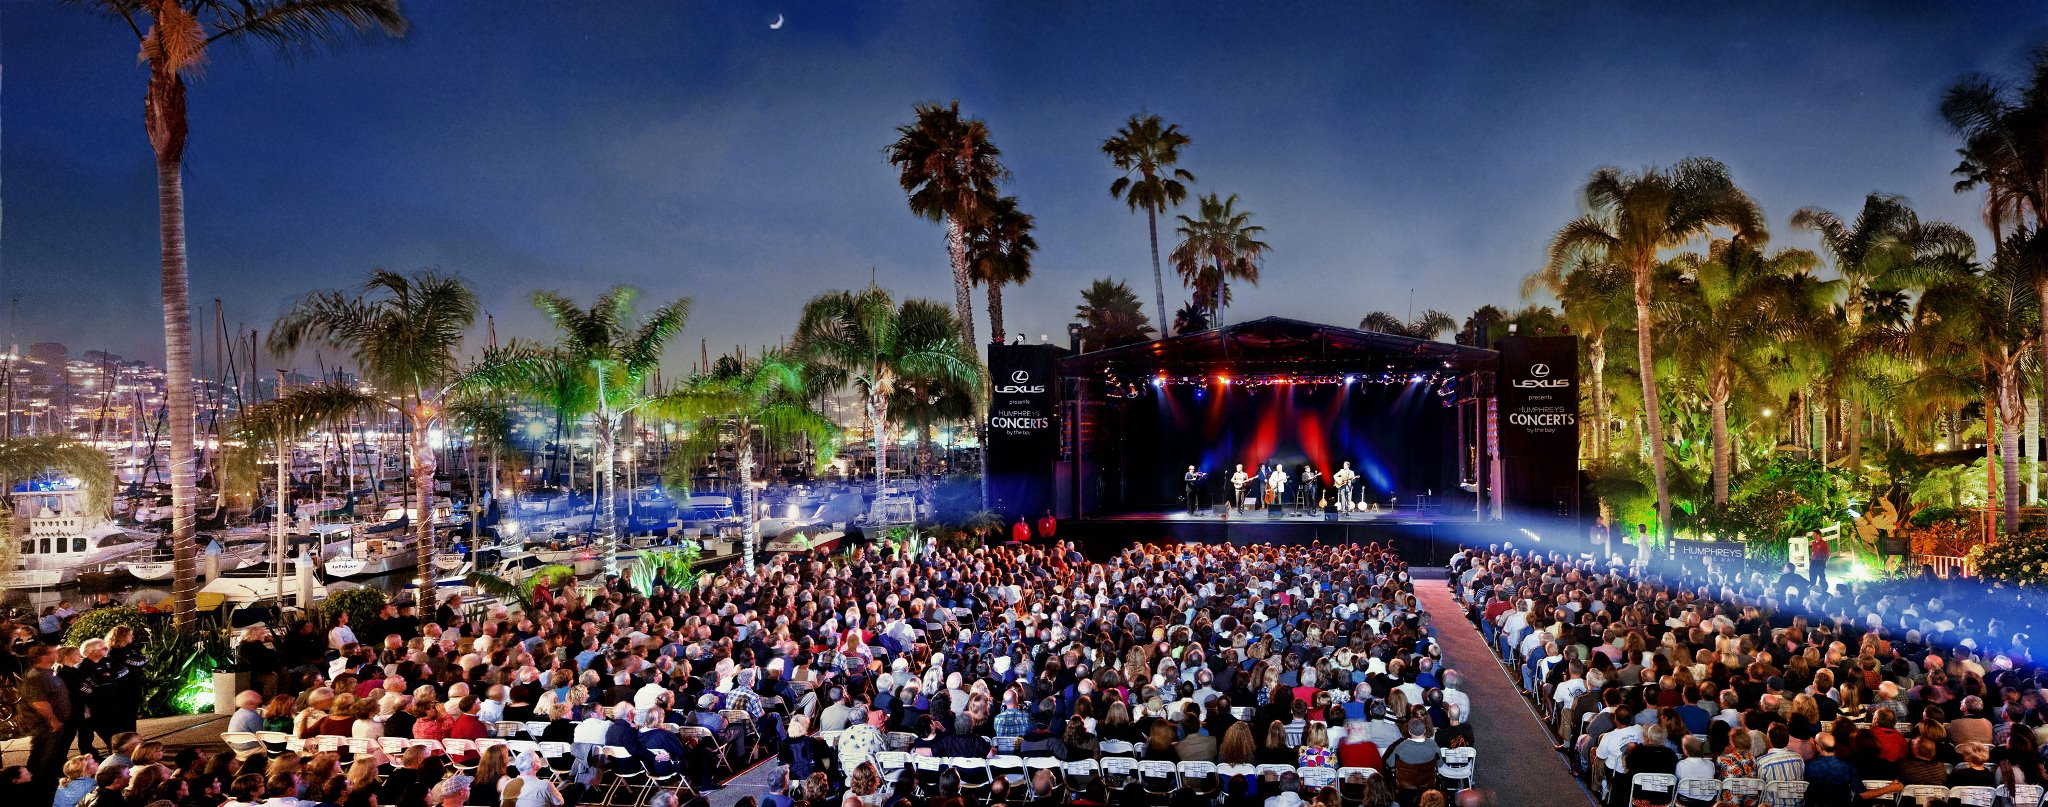 Humphreys Concerts by the Bay - San Diego Travel Blog